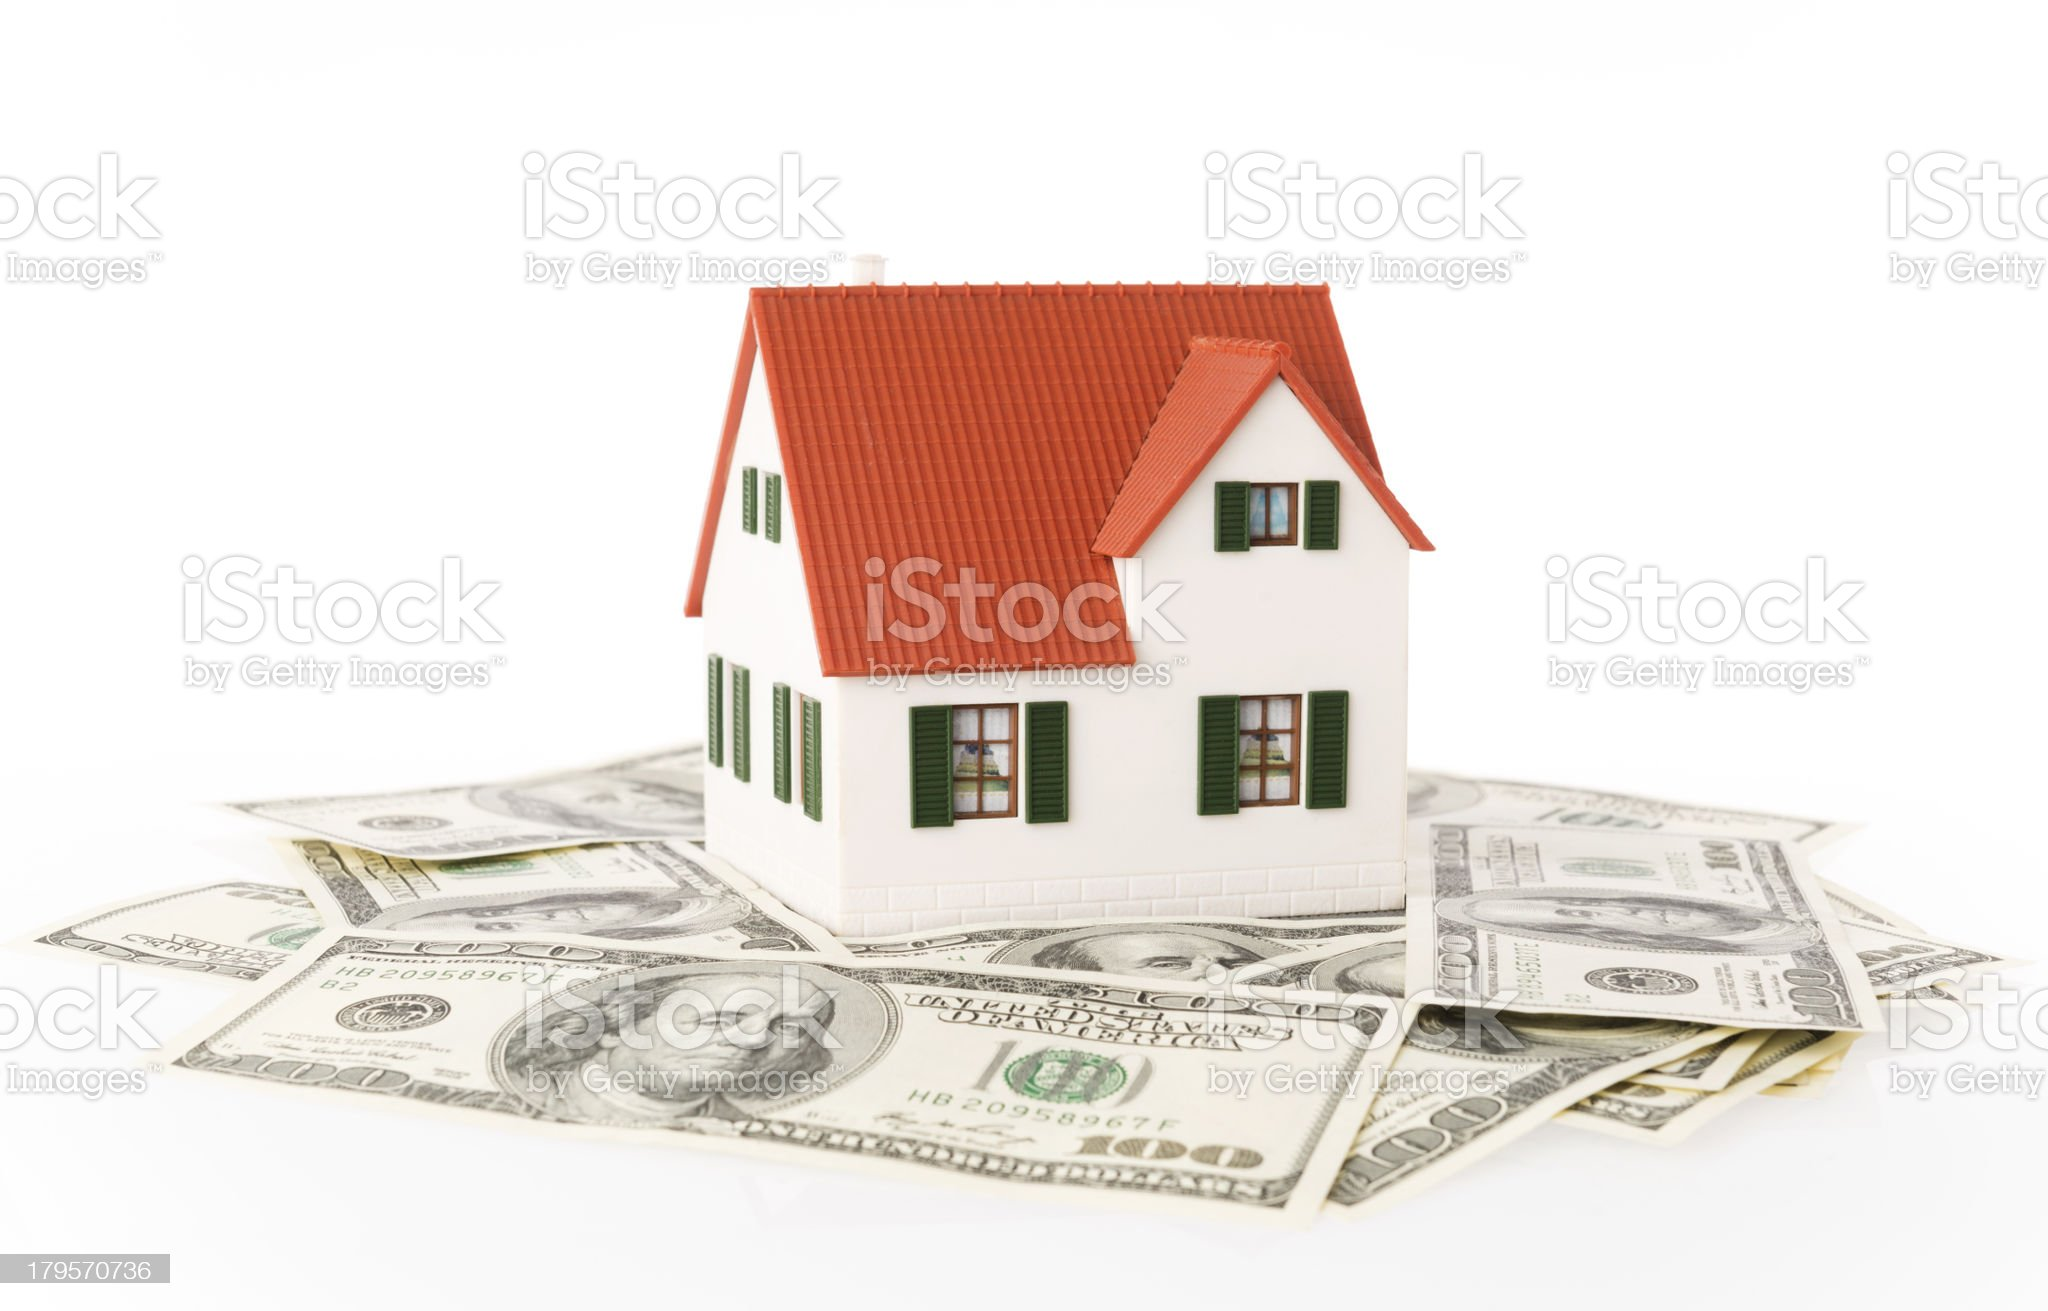 House and money royalty-free stock photo